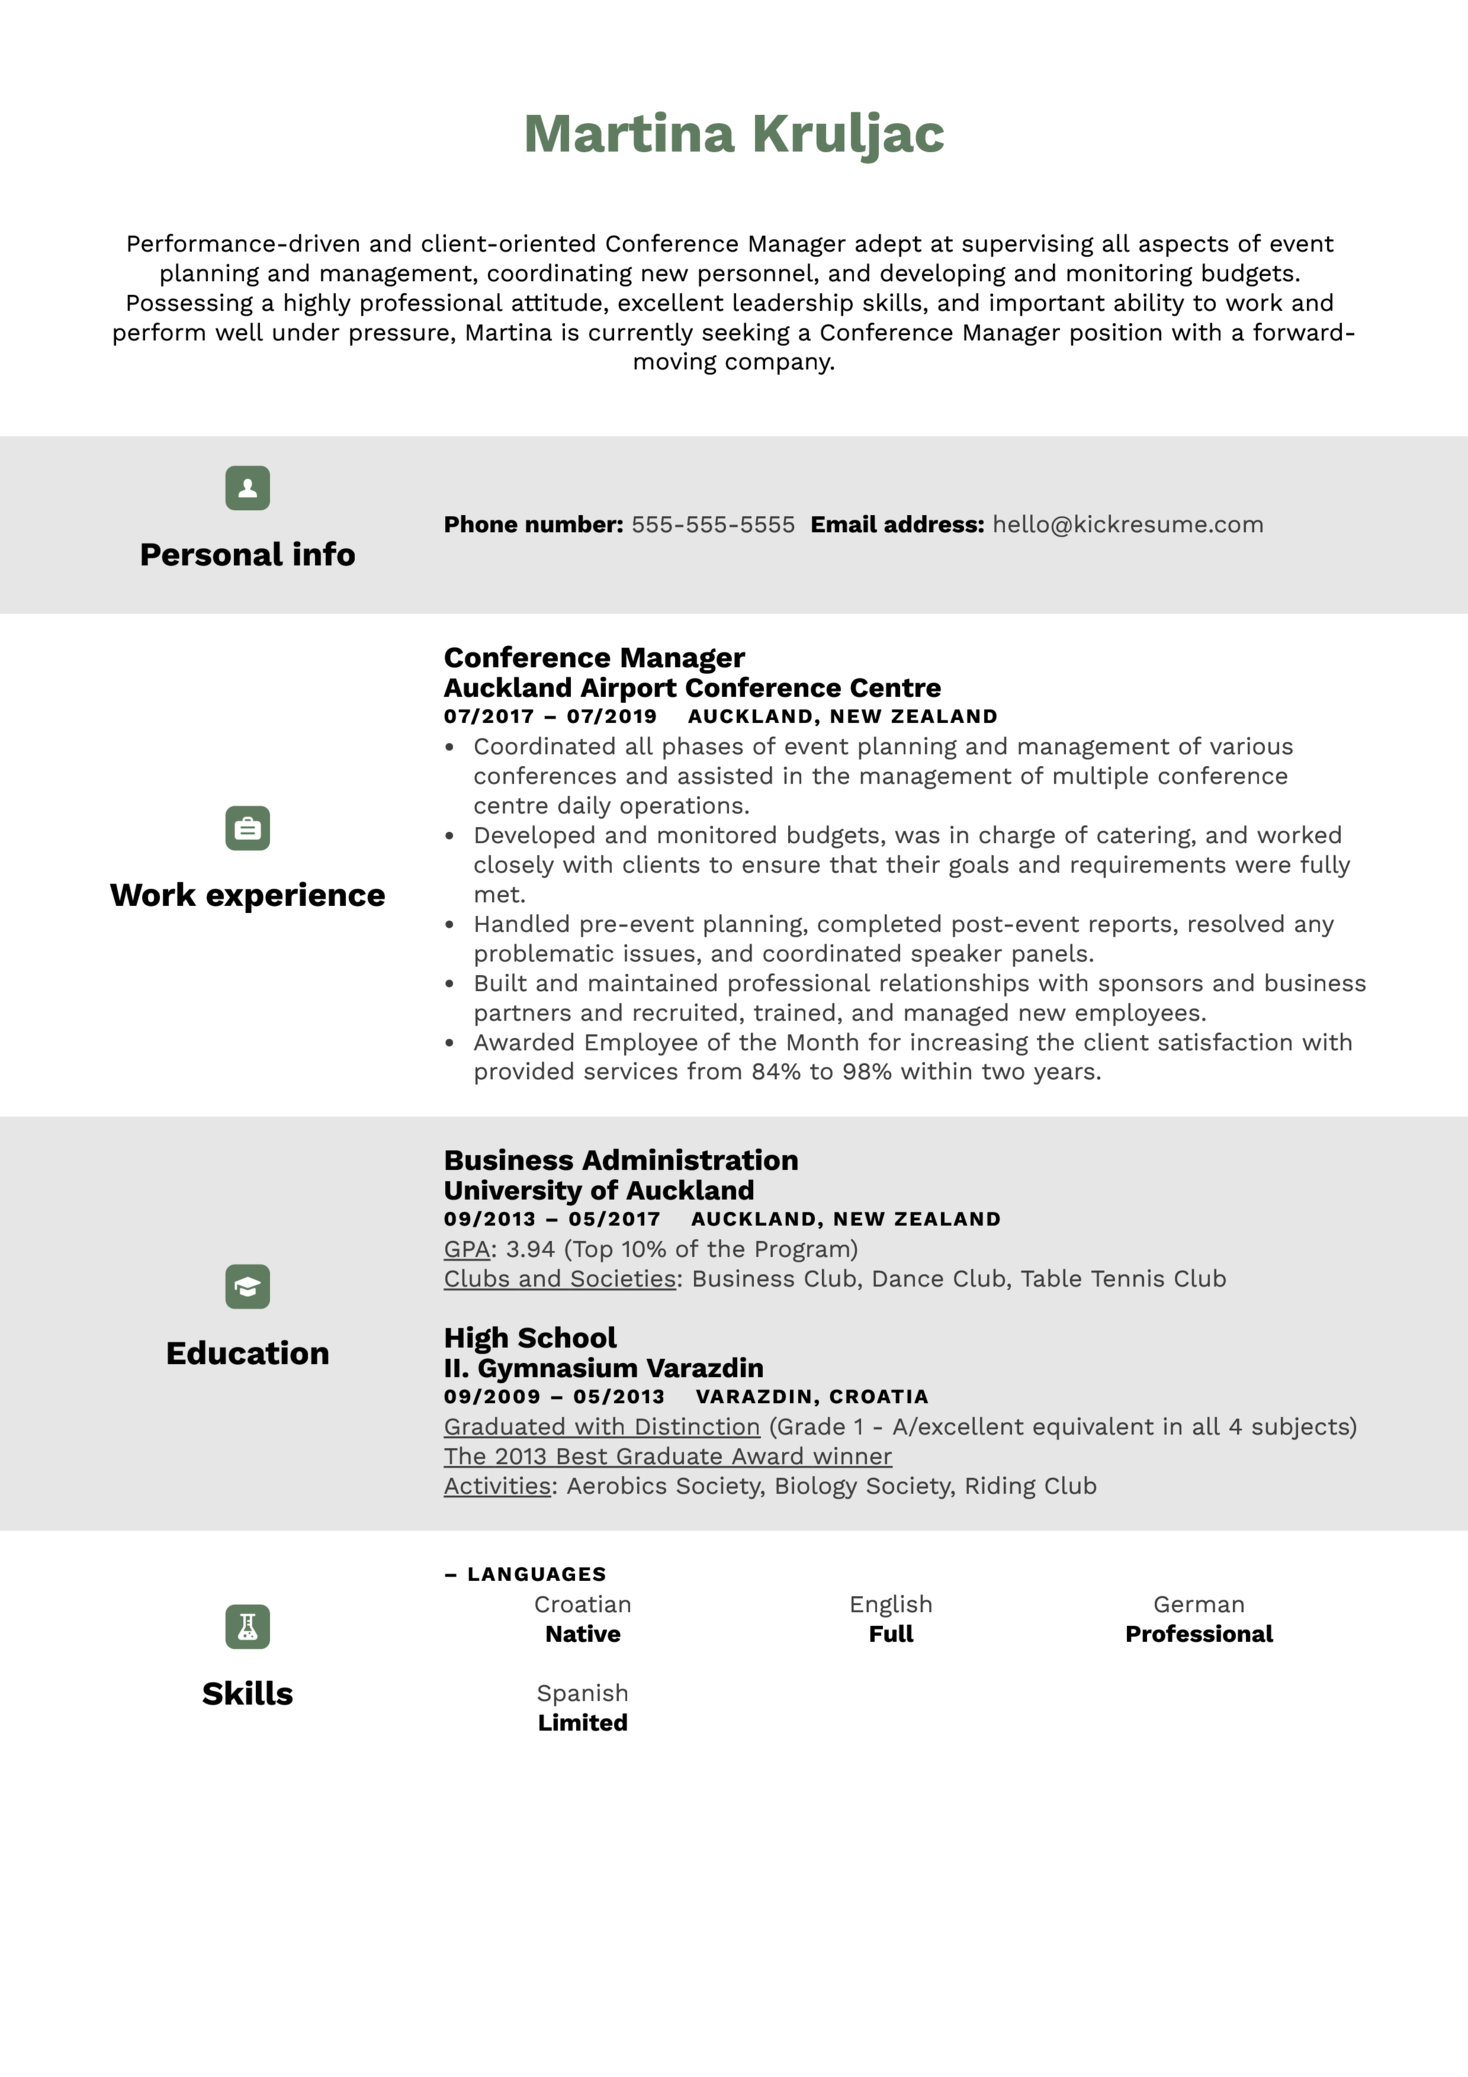 Conference Manager Resume Sample (parte 1)